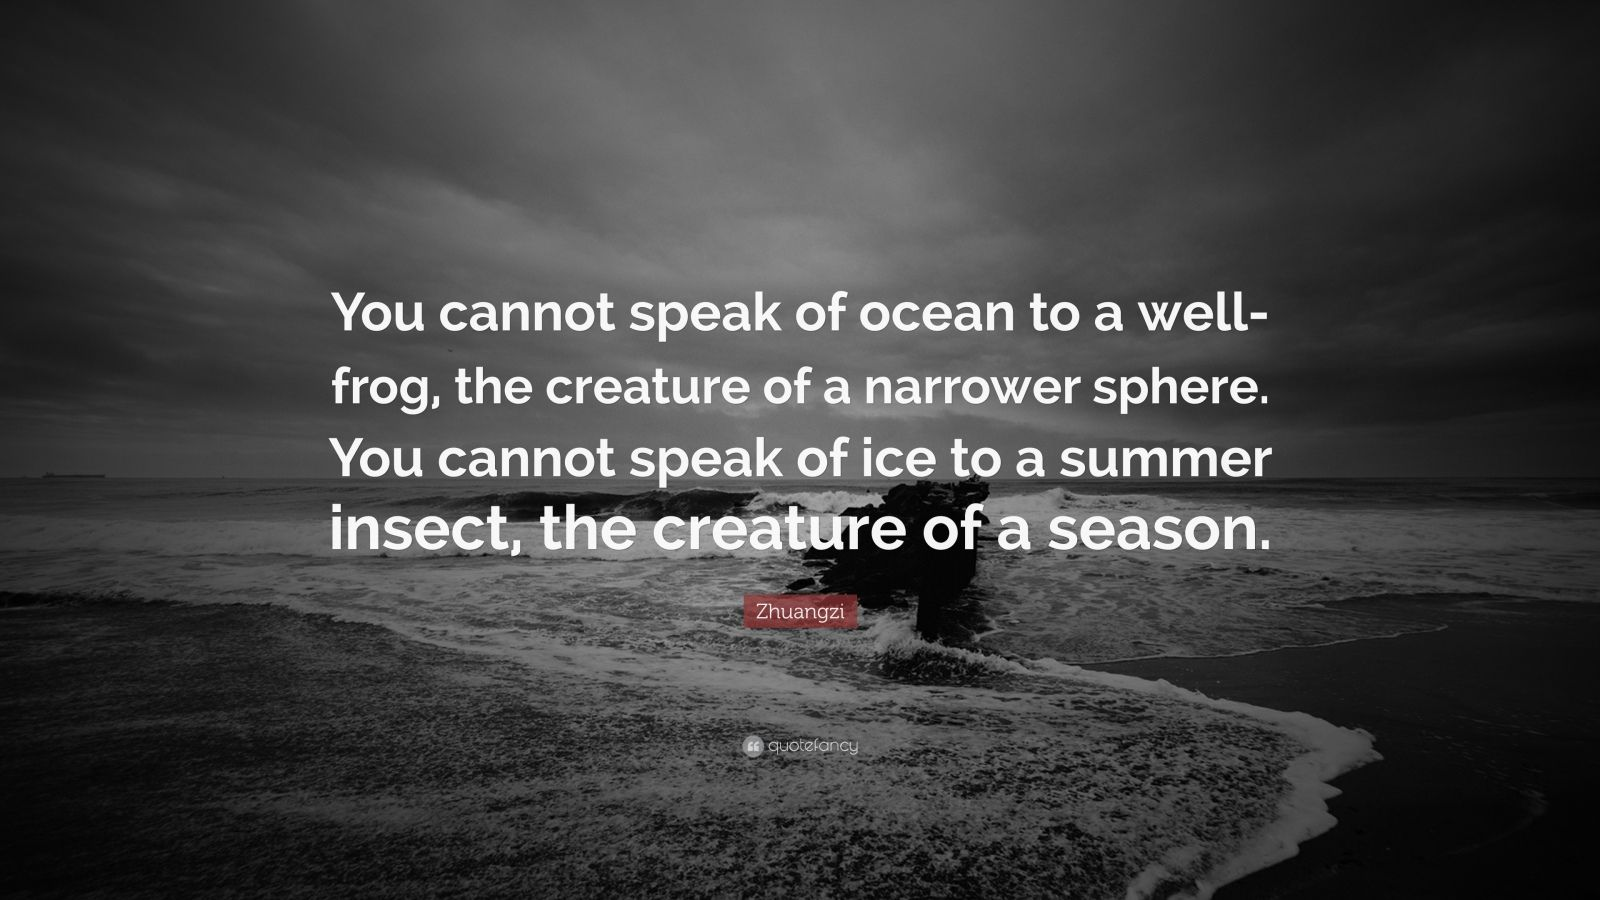 """Zhuangzi Quote: """"You cannot speak of ocean to a well-frog, the creature of a narrower sphere. You cannot speak of ice to a summer insect, the creature of a season."""""""